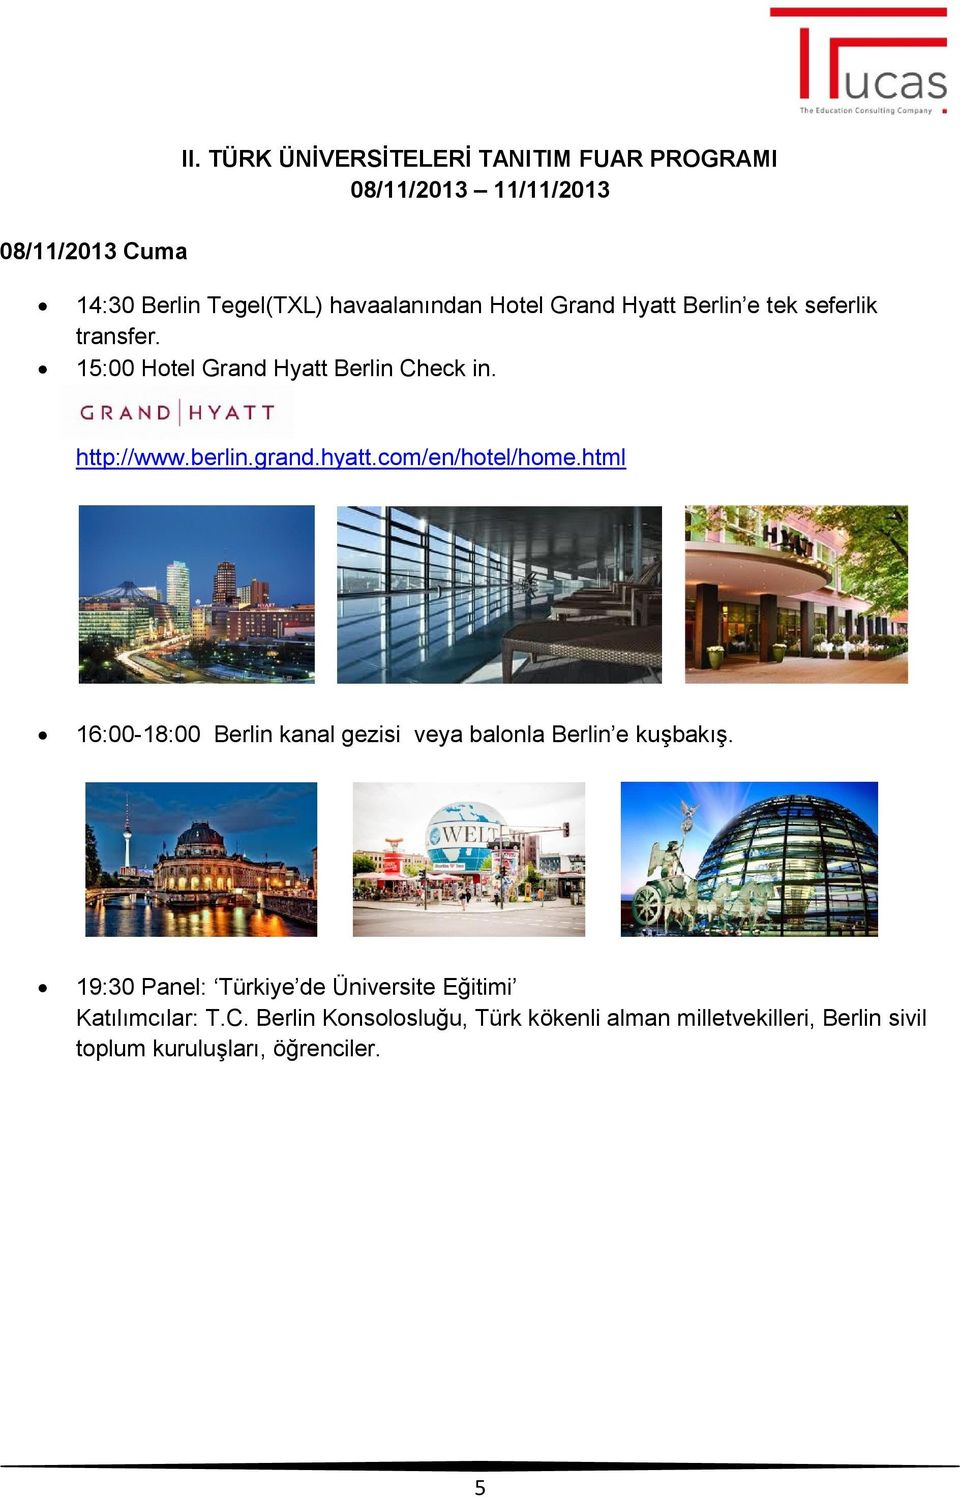 Berlin e tek seferlik transfer. 15:00 Hotel Grand Hyatt Berlin Check in. http://www.berlin.grand.hyatt.com/en/hotel/home.